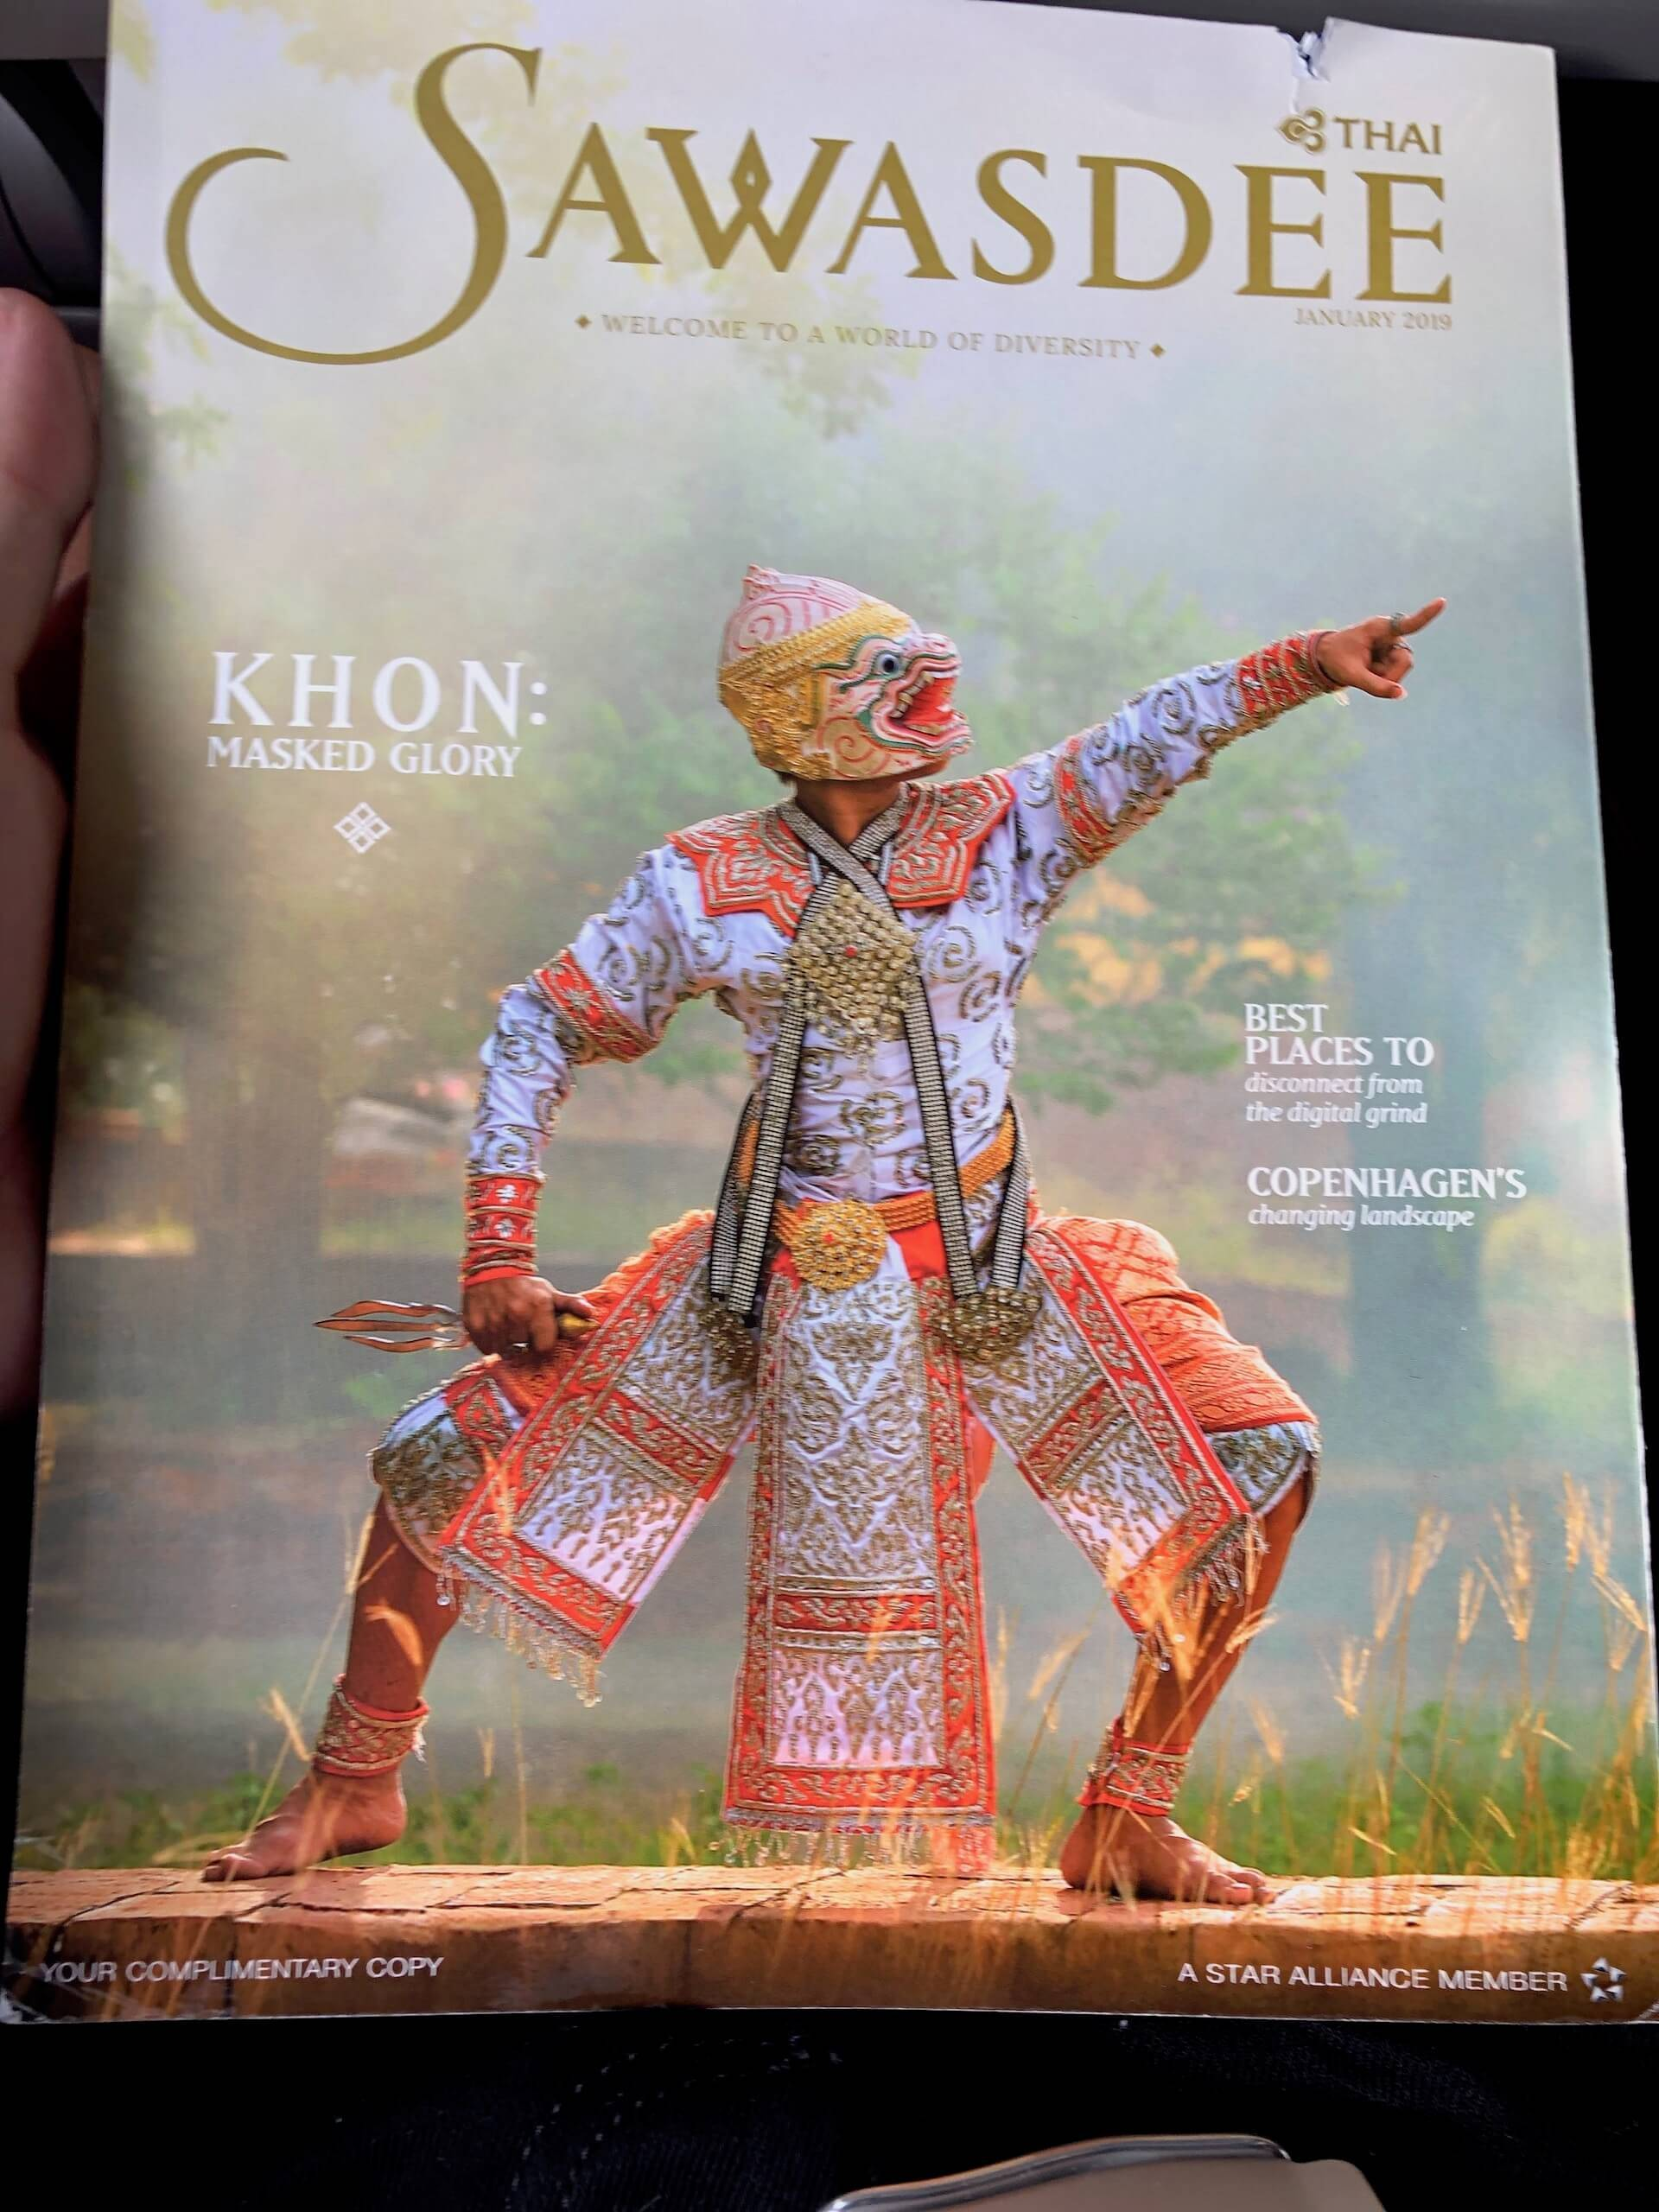 Thai Airways Bordmagazin Jan 2019